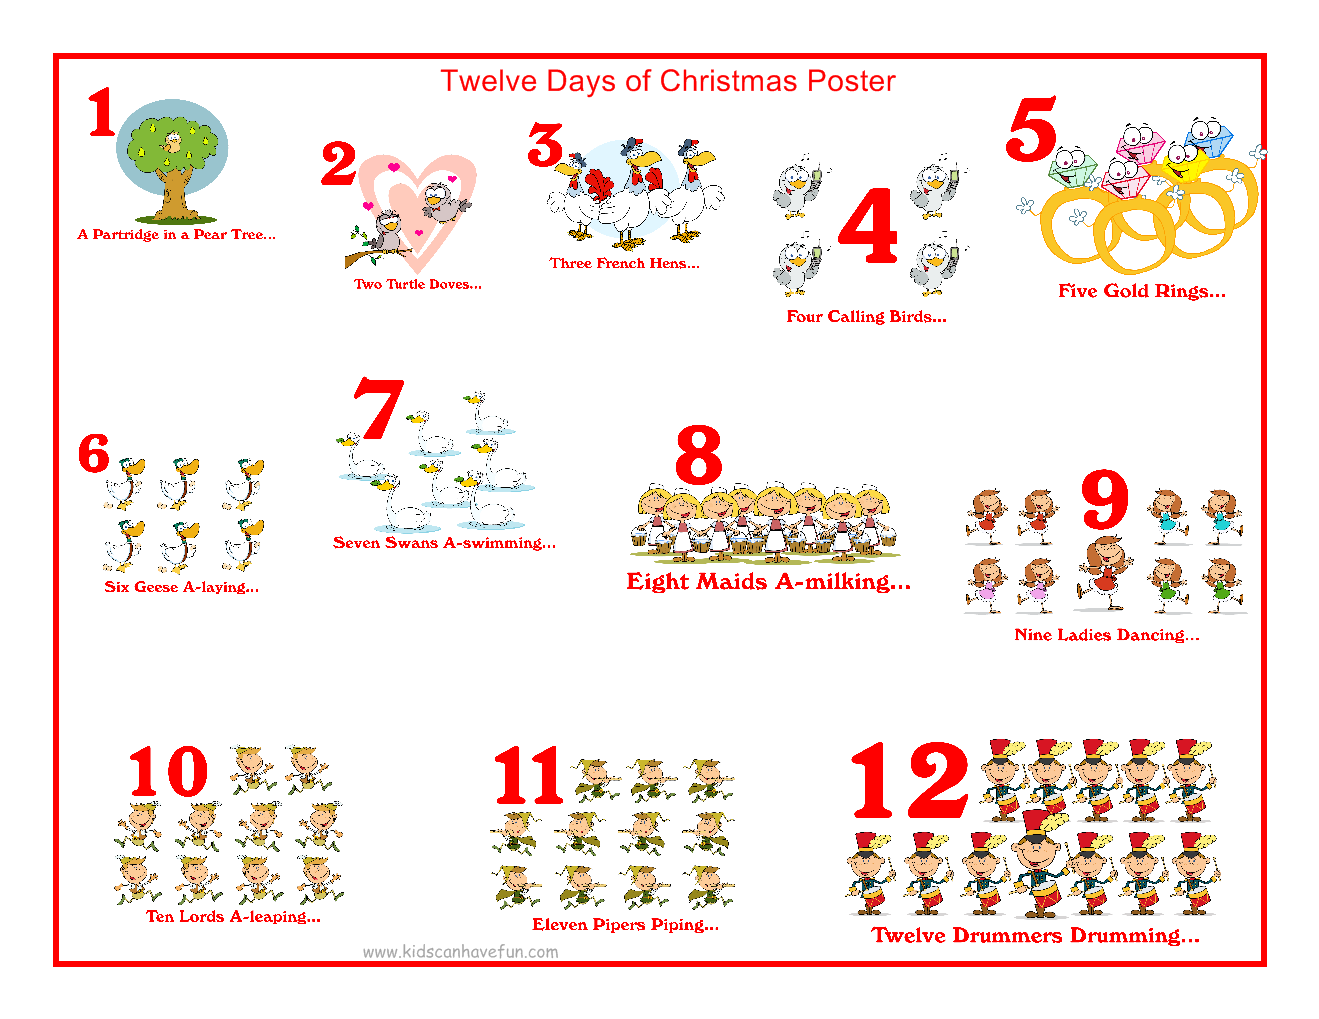 When are the 12 days of Christmas?